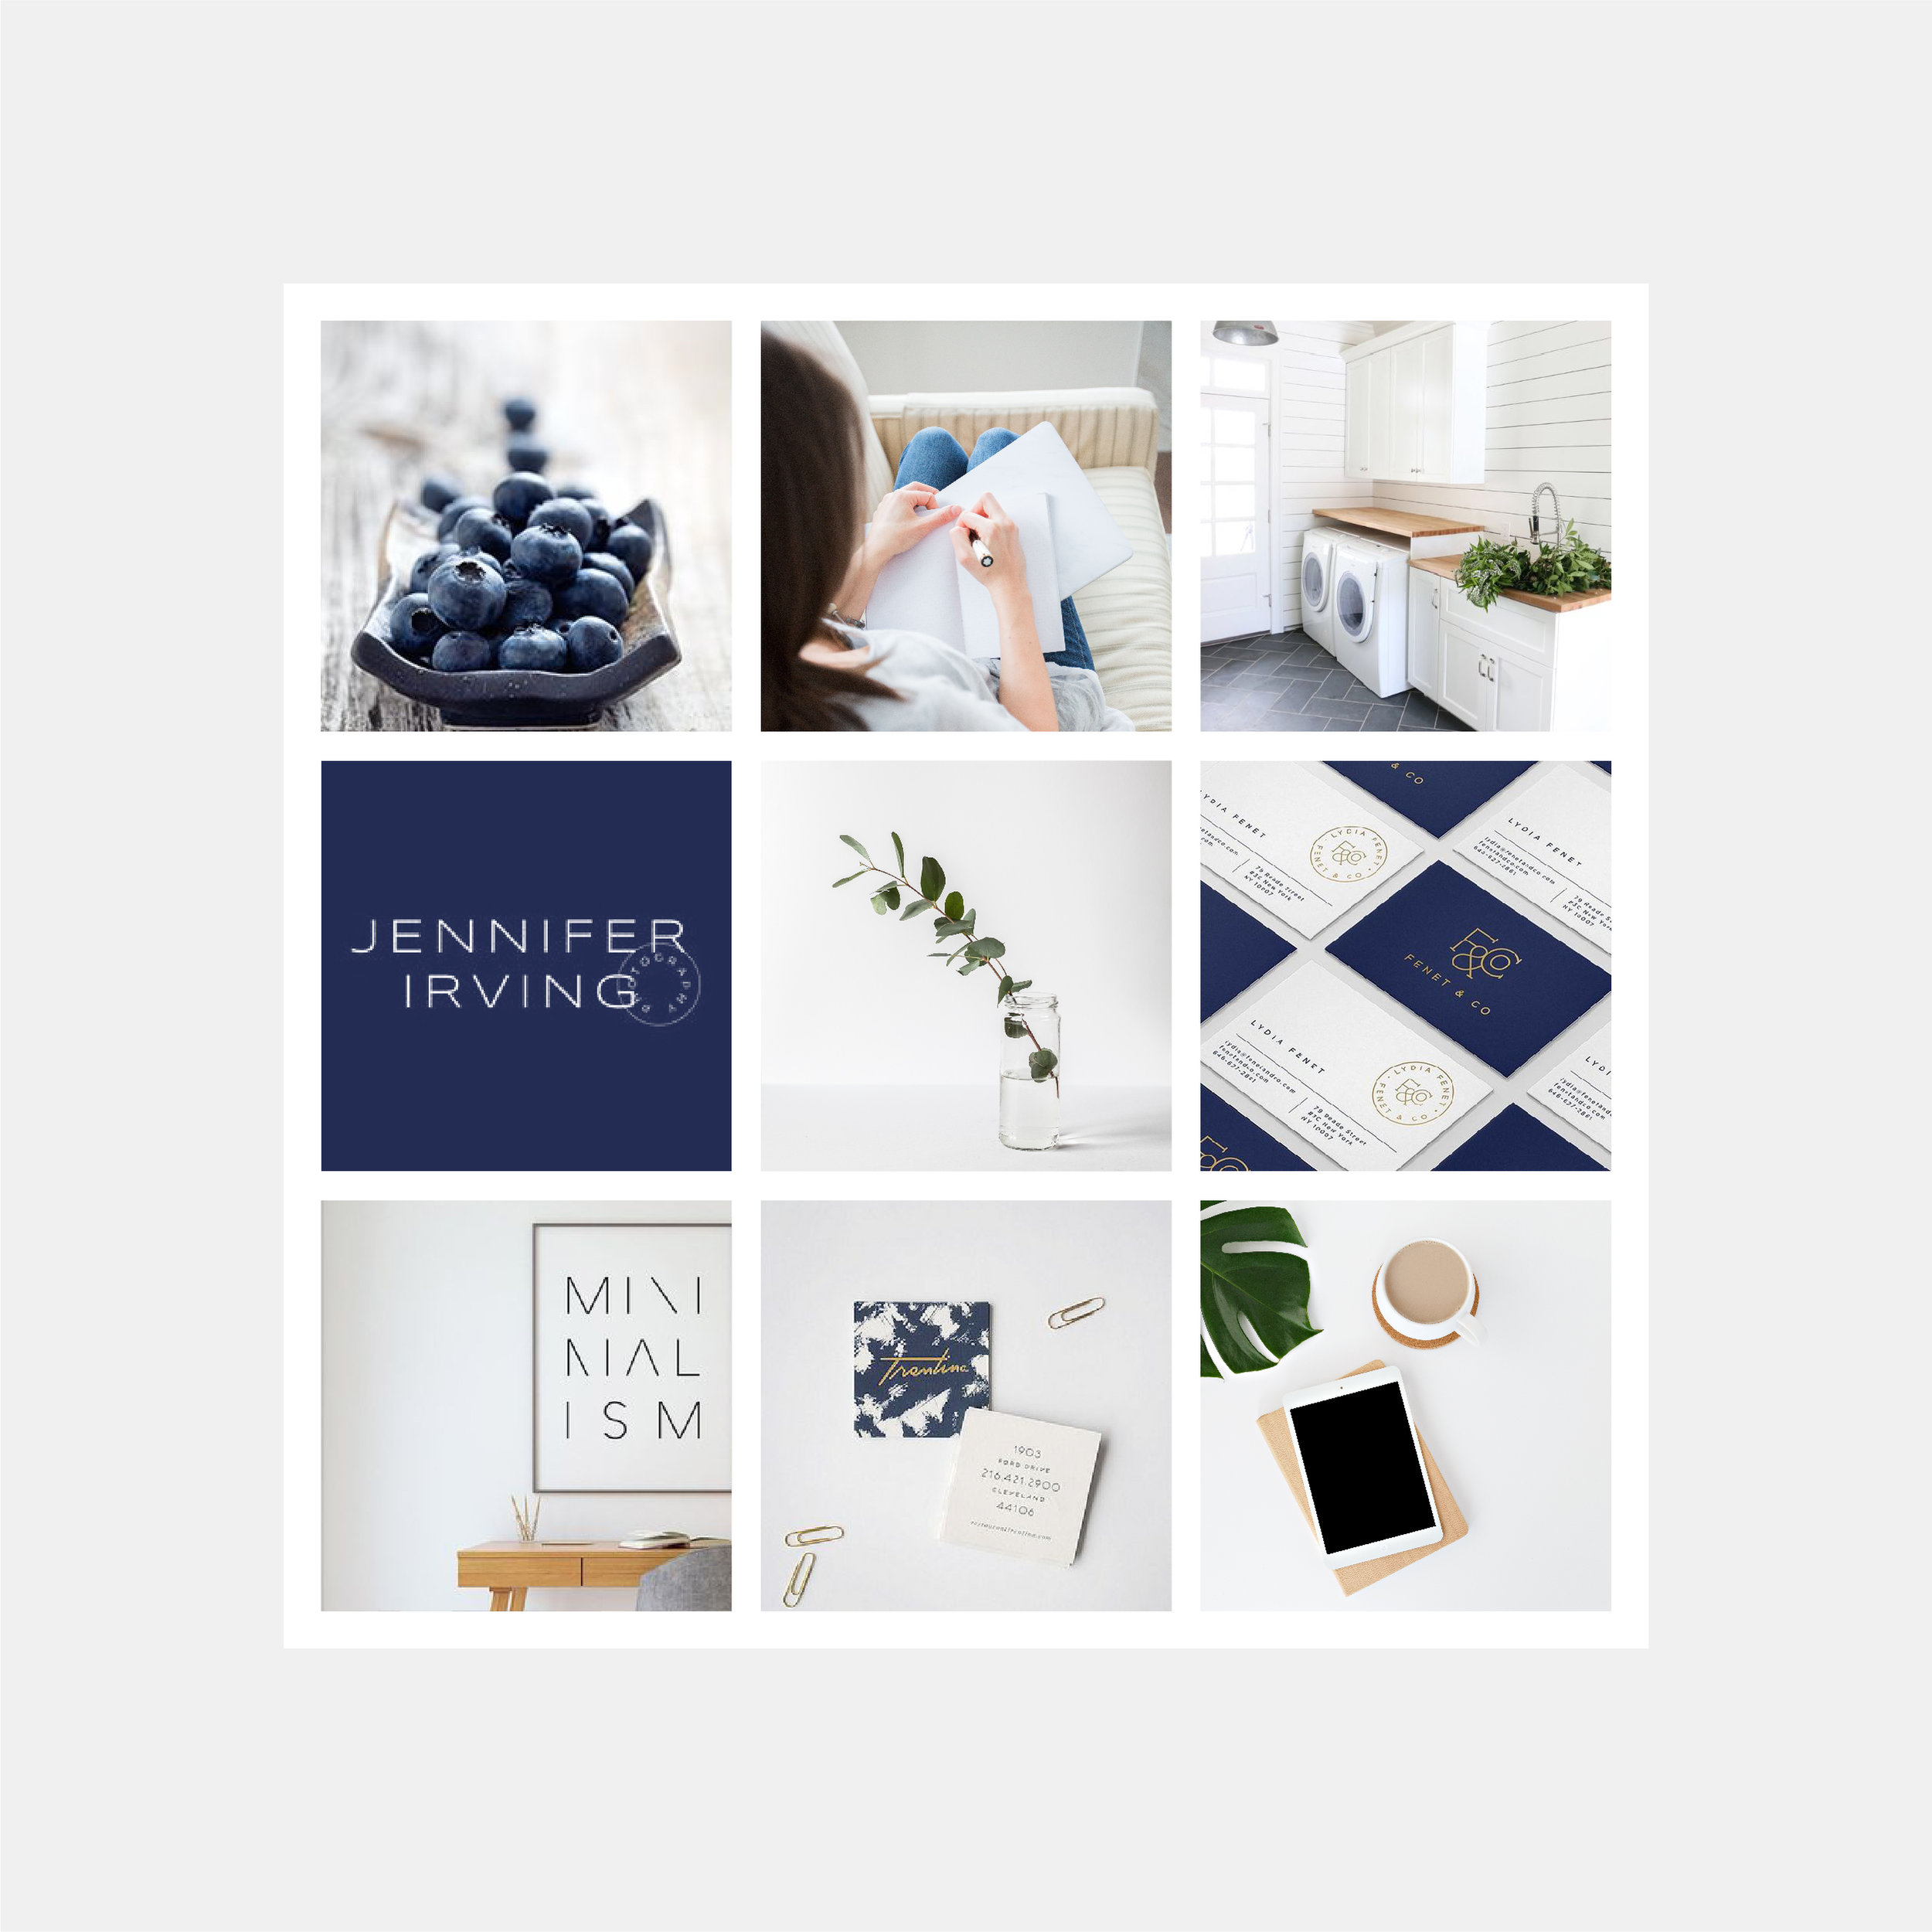 03 CANOPY_Tidy LA by Meredith Ryness_Mood Board Design.jpg